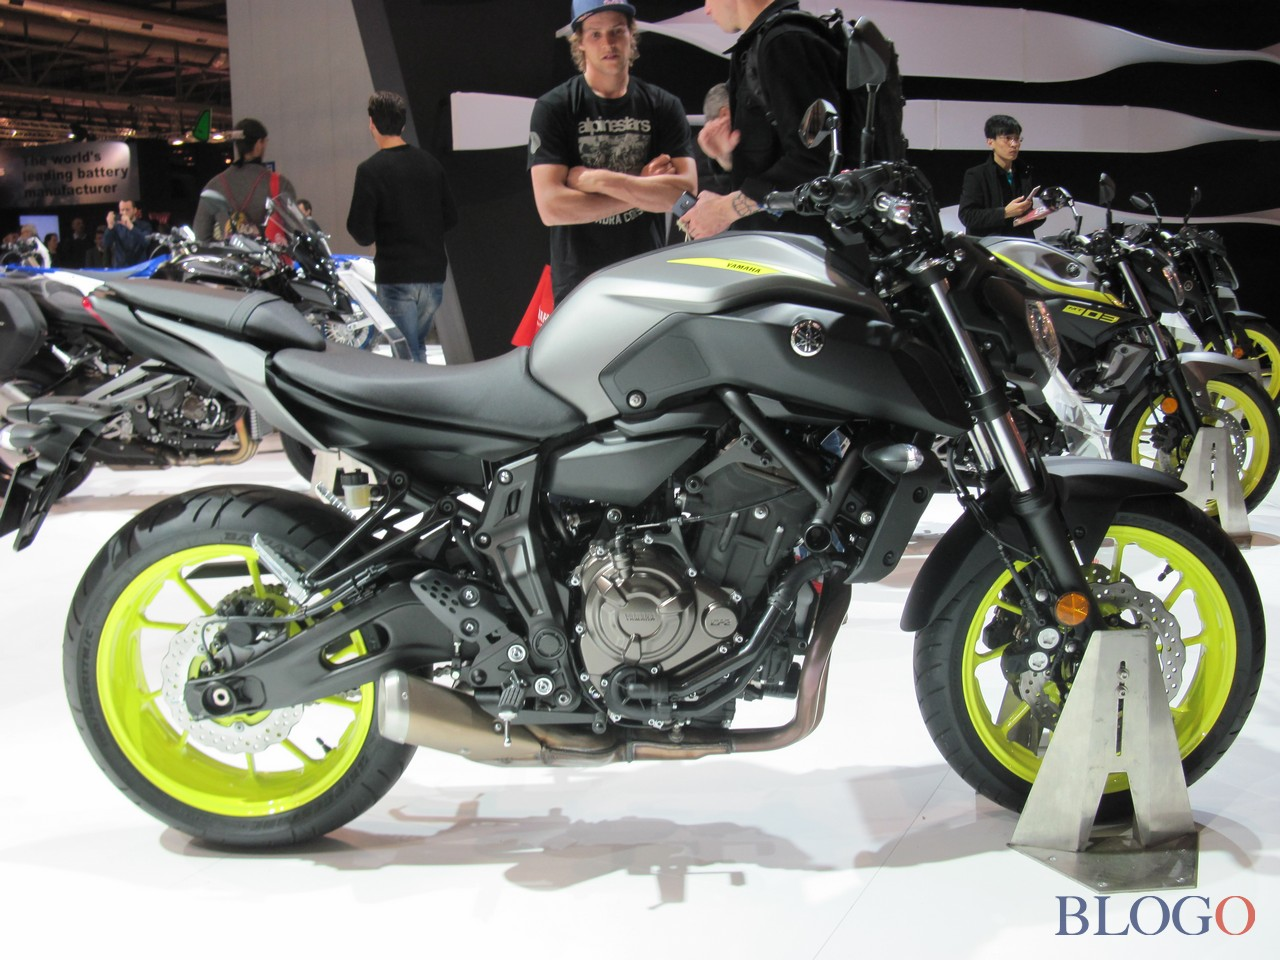 yamaha mt 07 my 2018. Black Bedroom Furniture Sets. Home Design Ideas